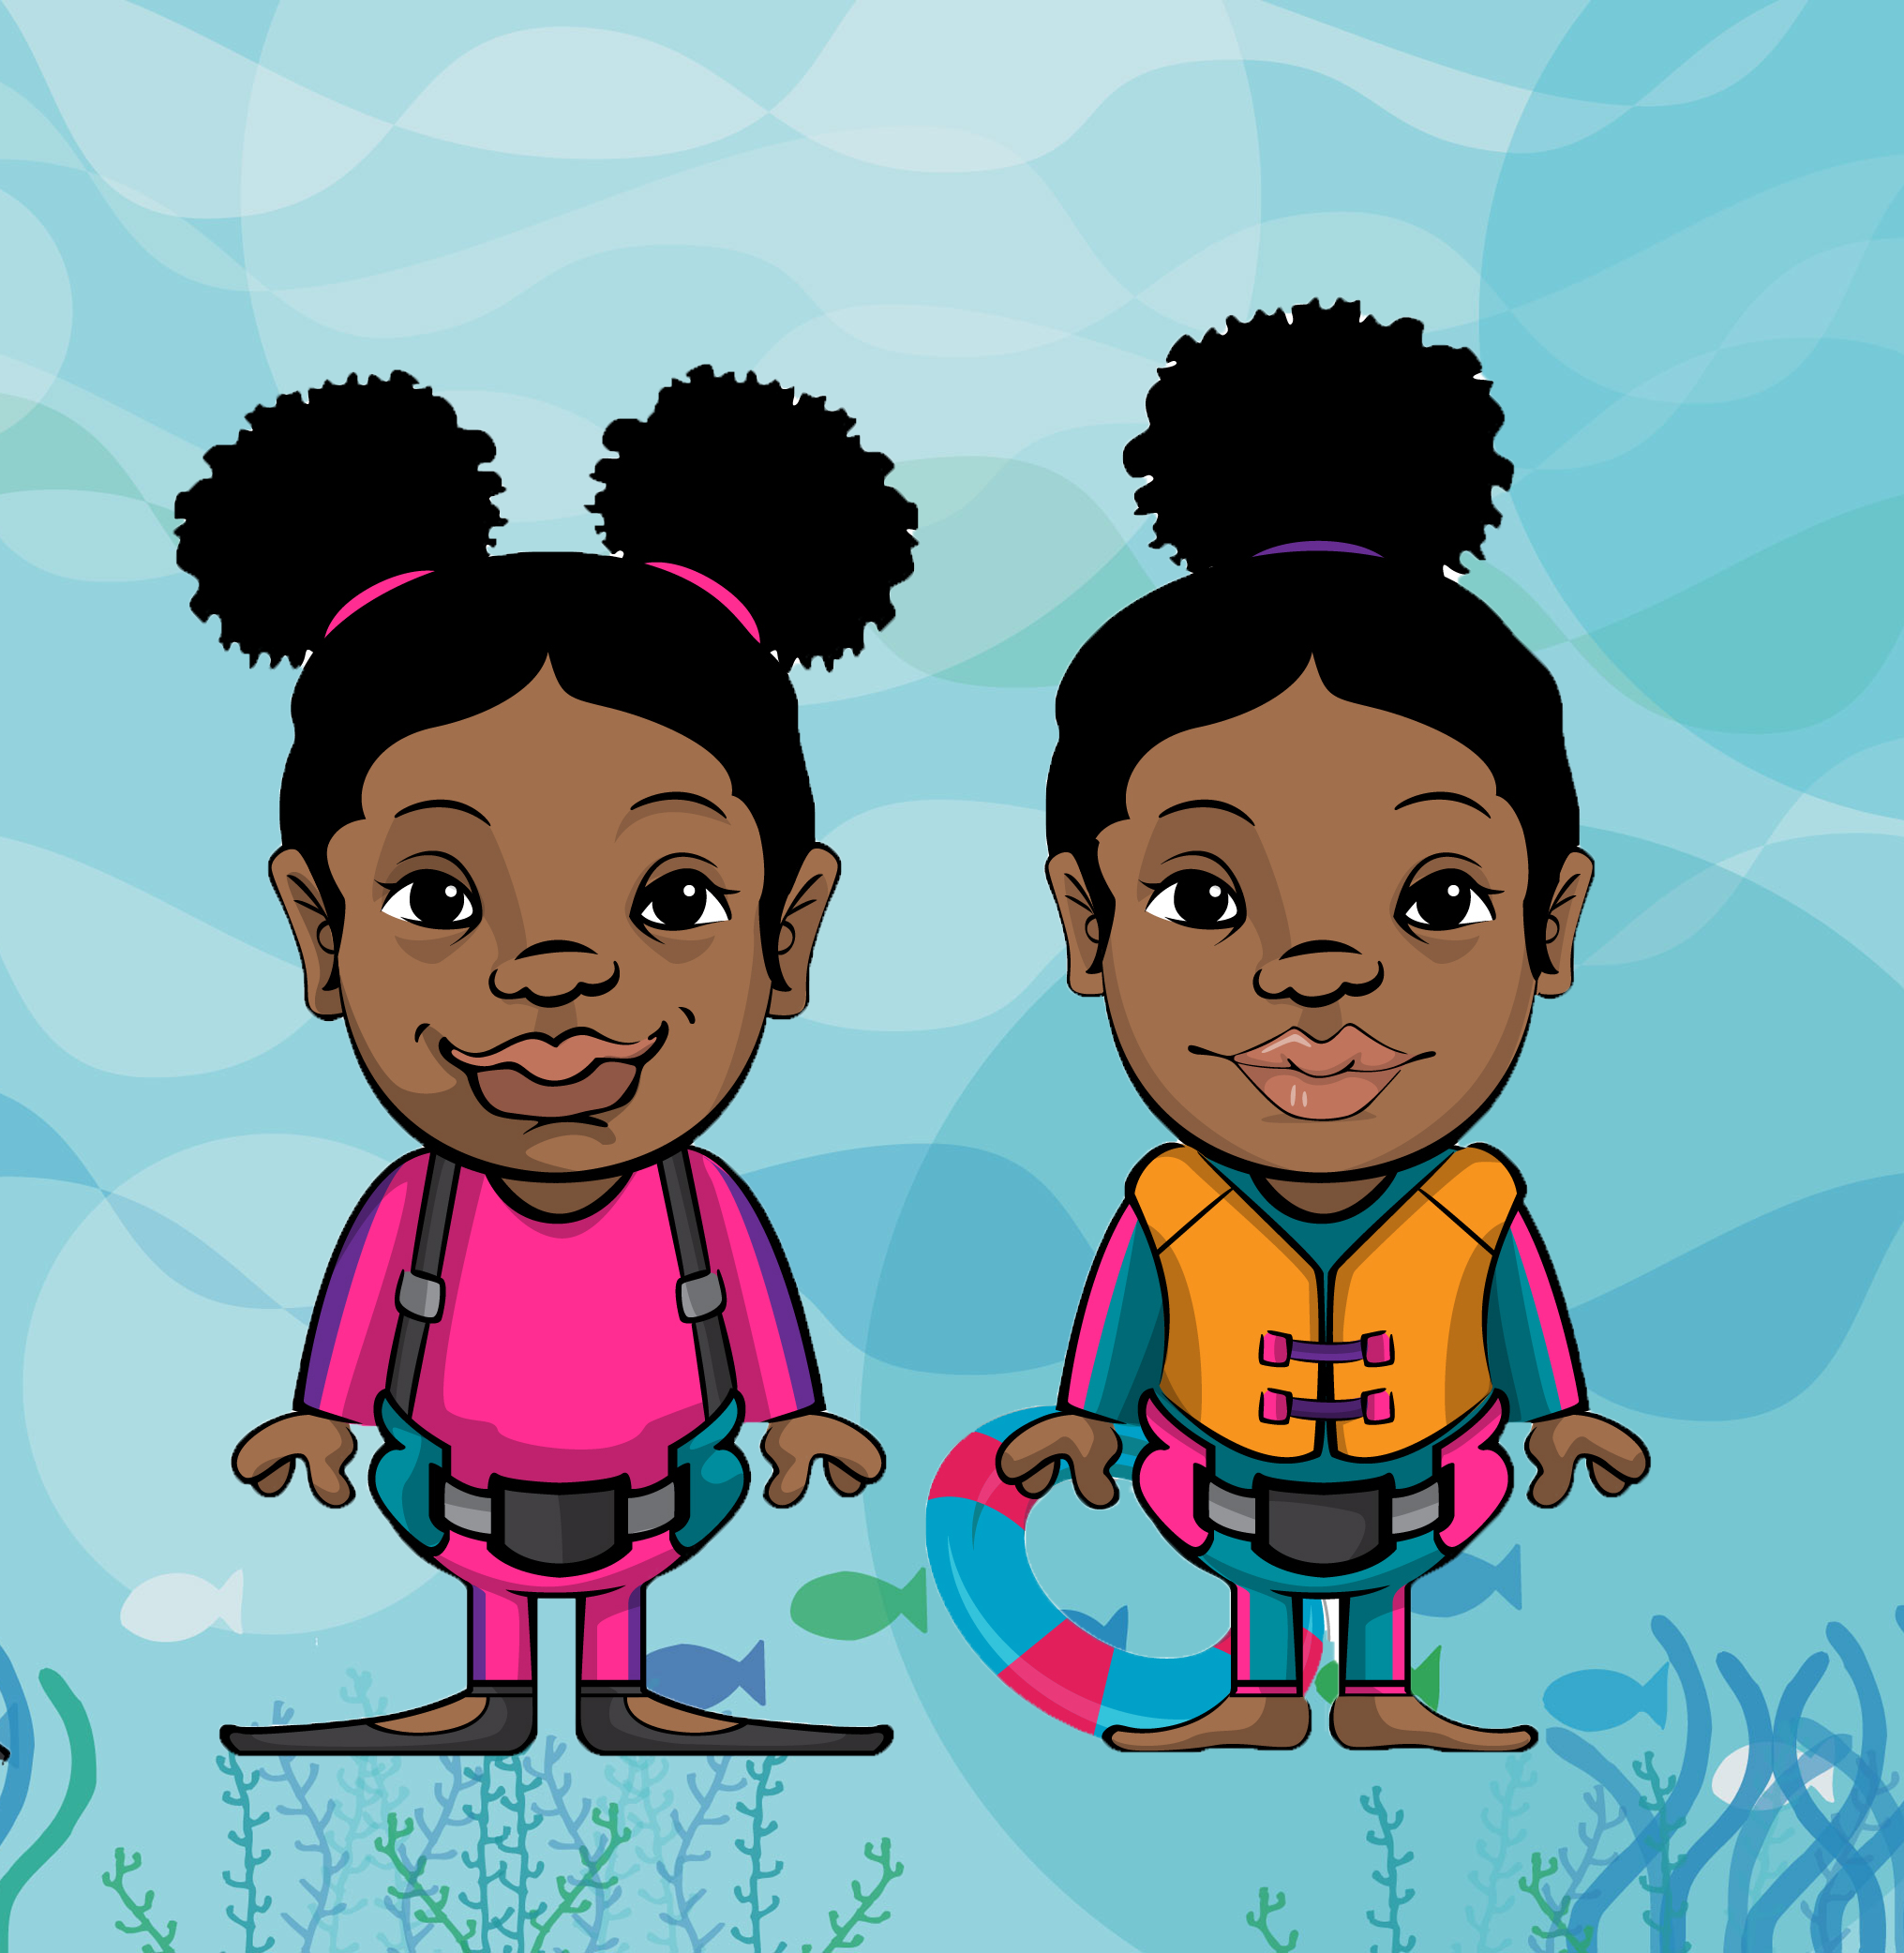 Sneu & Symon - Hi! We're Sneu (pink) and Symon (yellow),the youth avatar ambassadors for Black Girls Dive Foundation!We are here to share one of the many great things we are doing this summer - READING!!